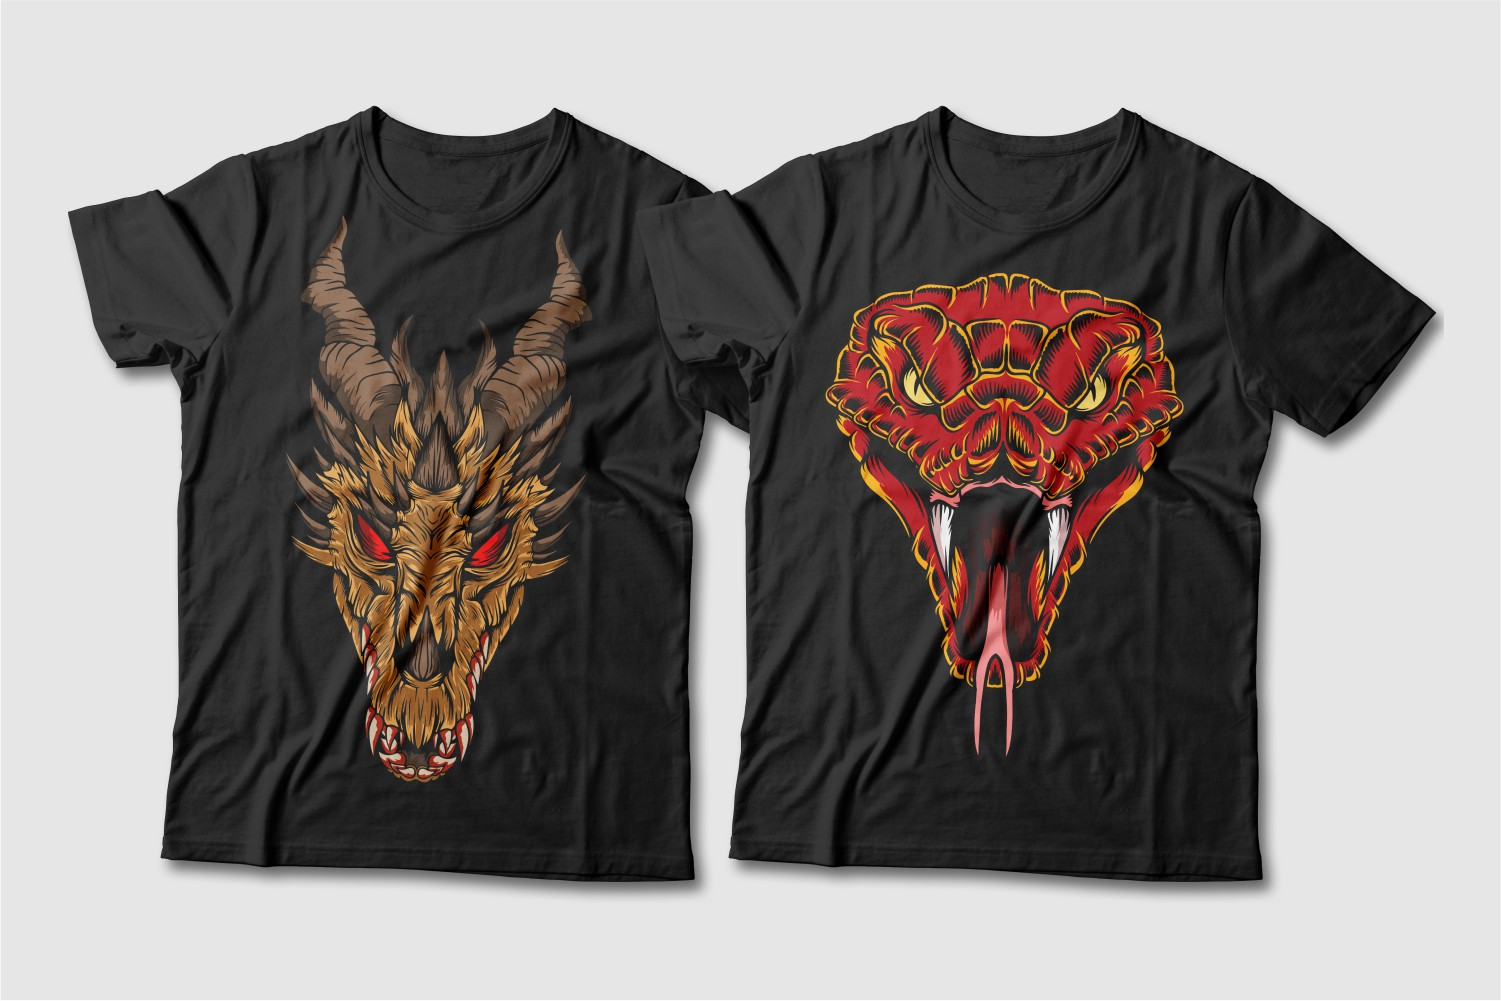 Black T-shirts with a crew neck and a brown horned dragon with red eyes and a red cobra with a big tongue.